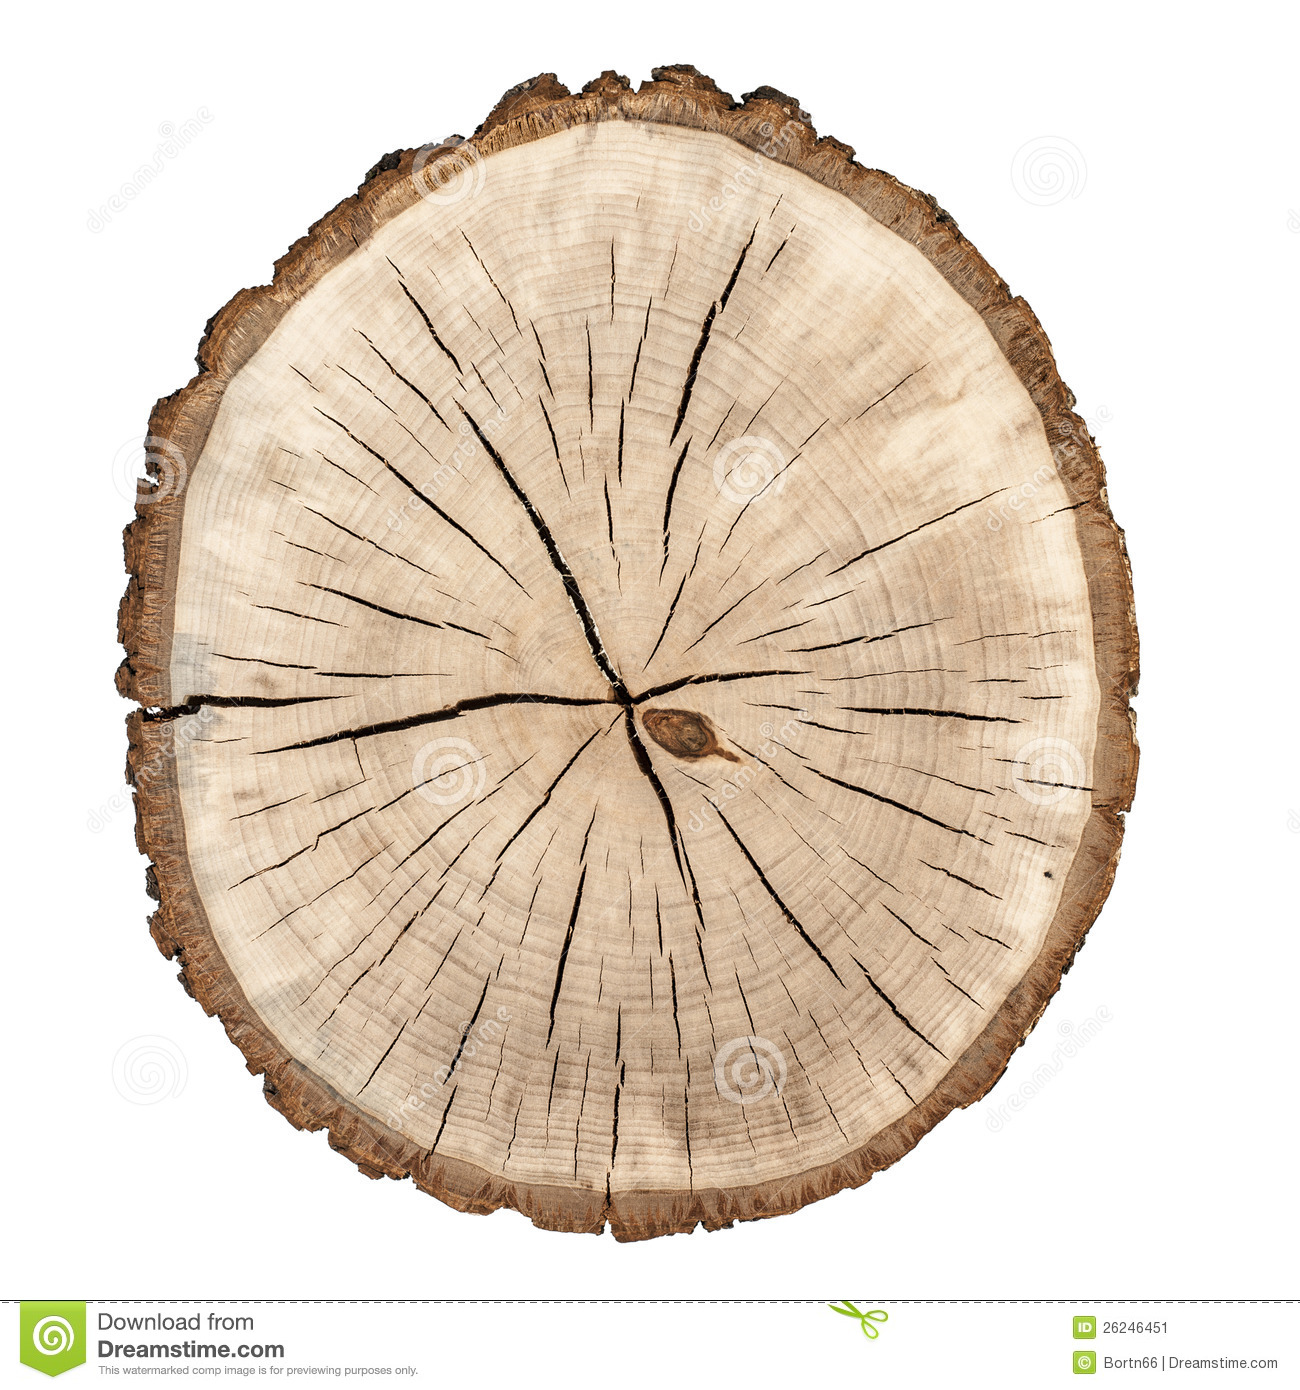 tree rings stock image image of circle  tree  grain tree stump clipart images tree stump clip art pic